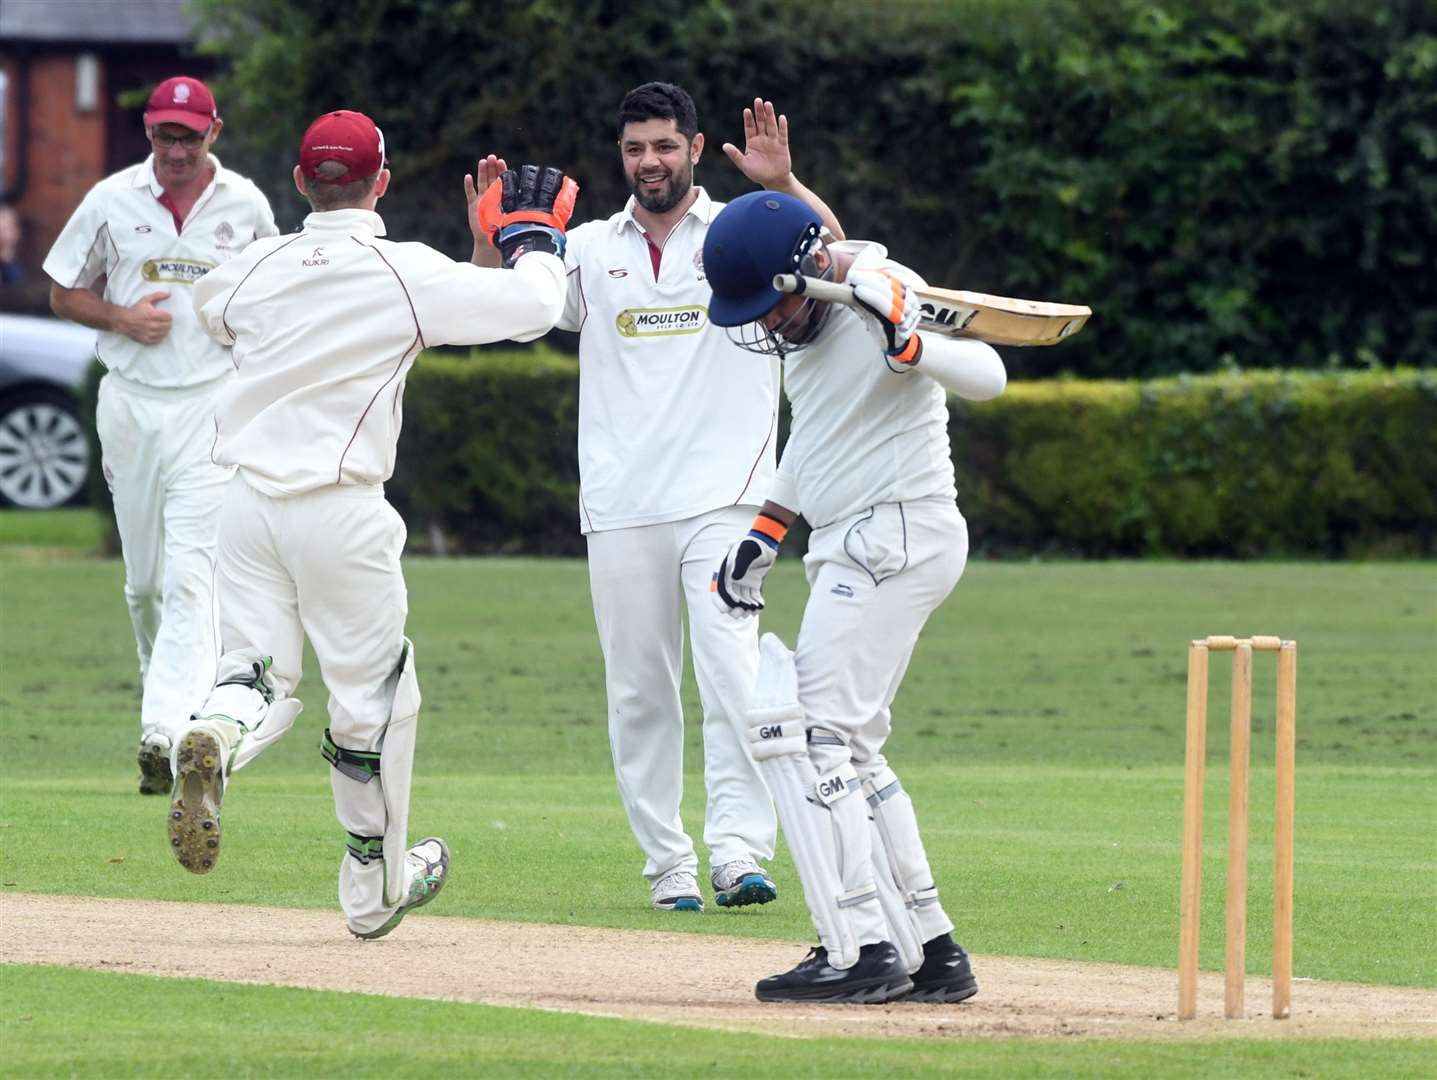 Nohman Jarral celebrates dismissing Chaitanya Dave LBW.Photo by Adam Fairbrother.SG-030819-023AF